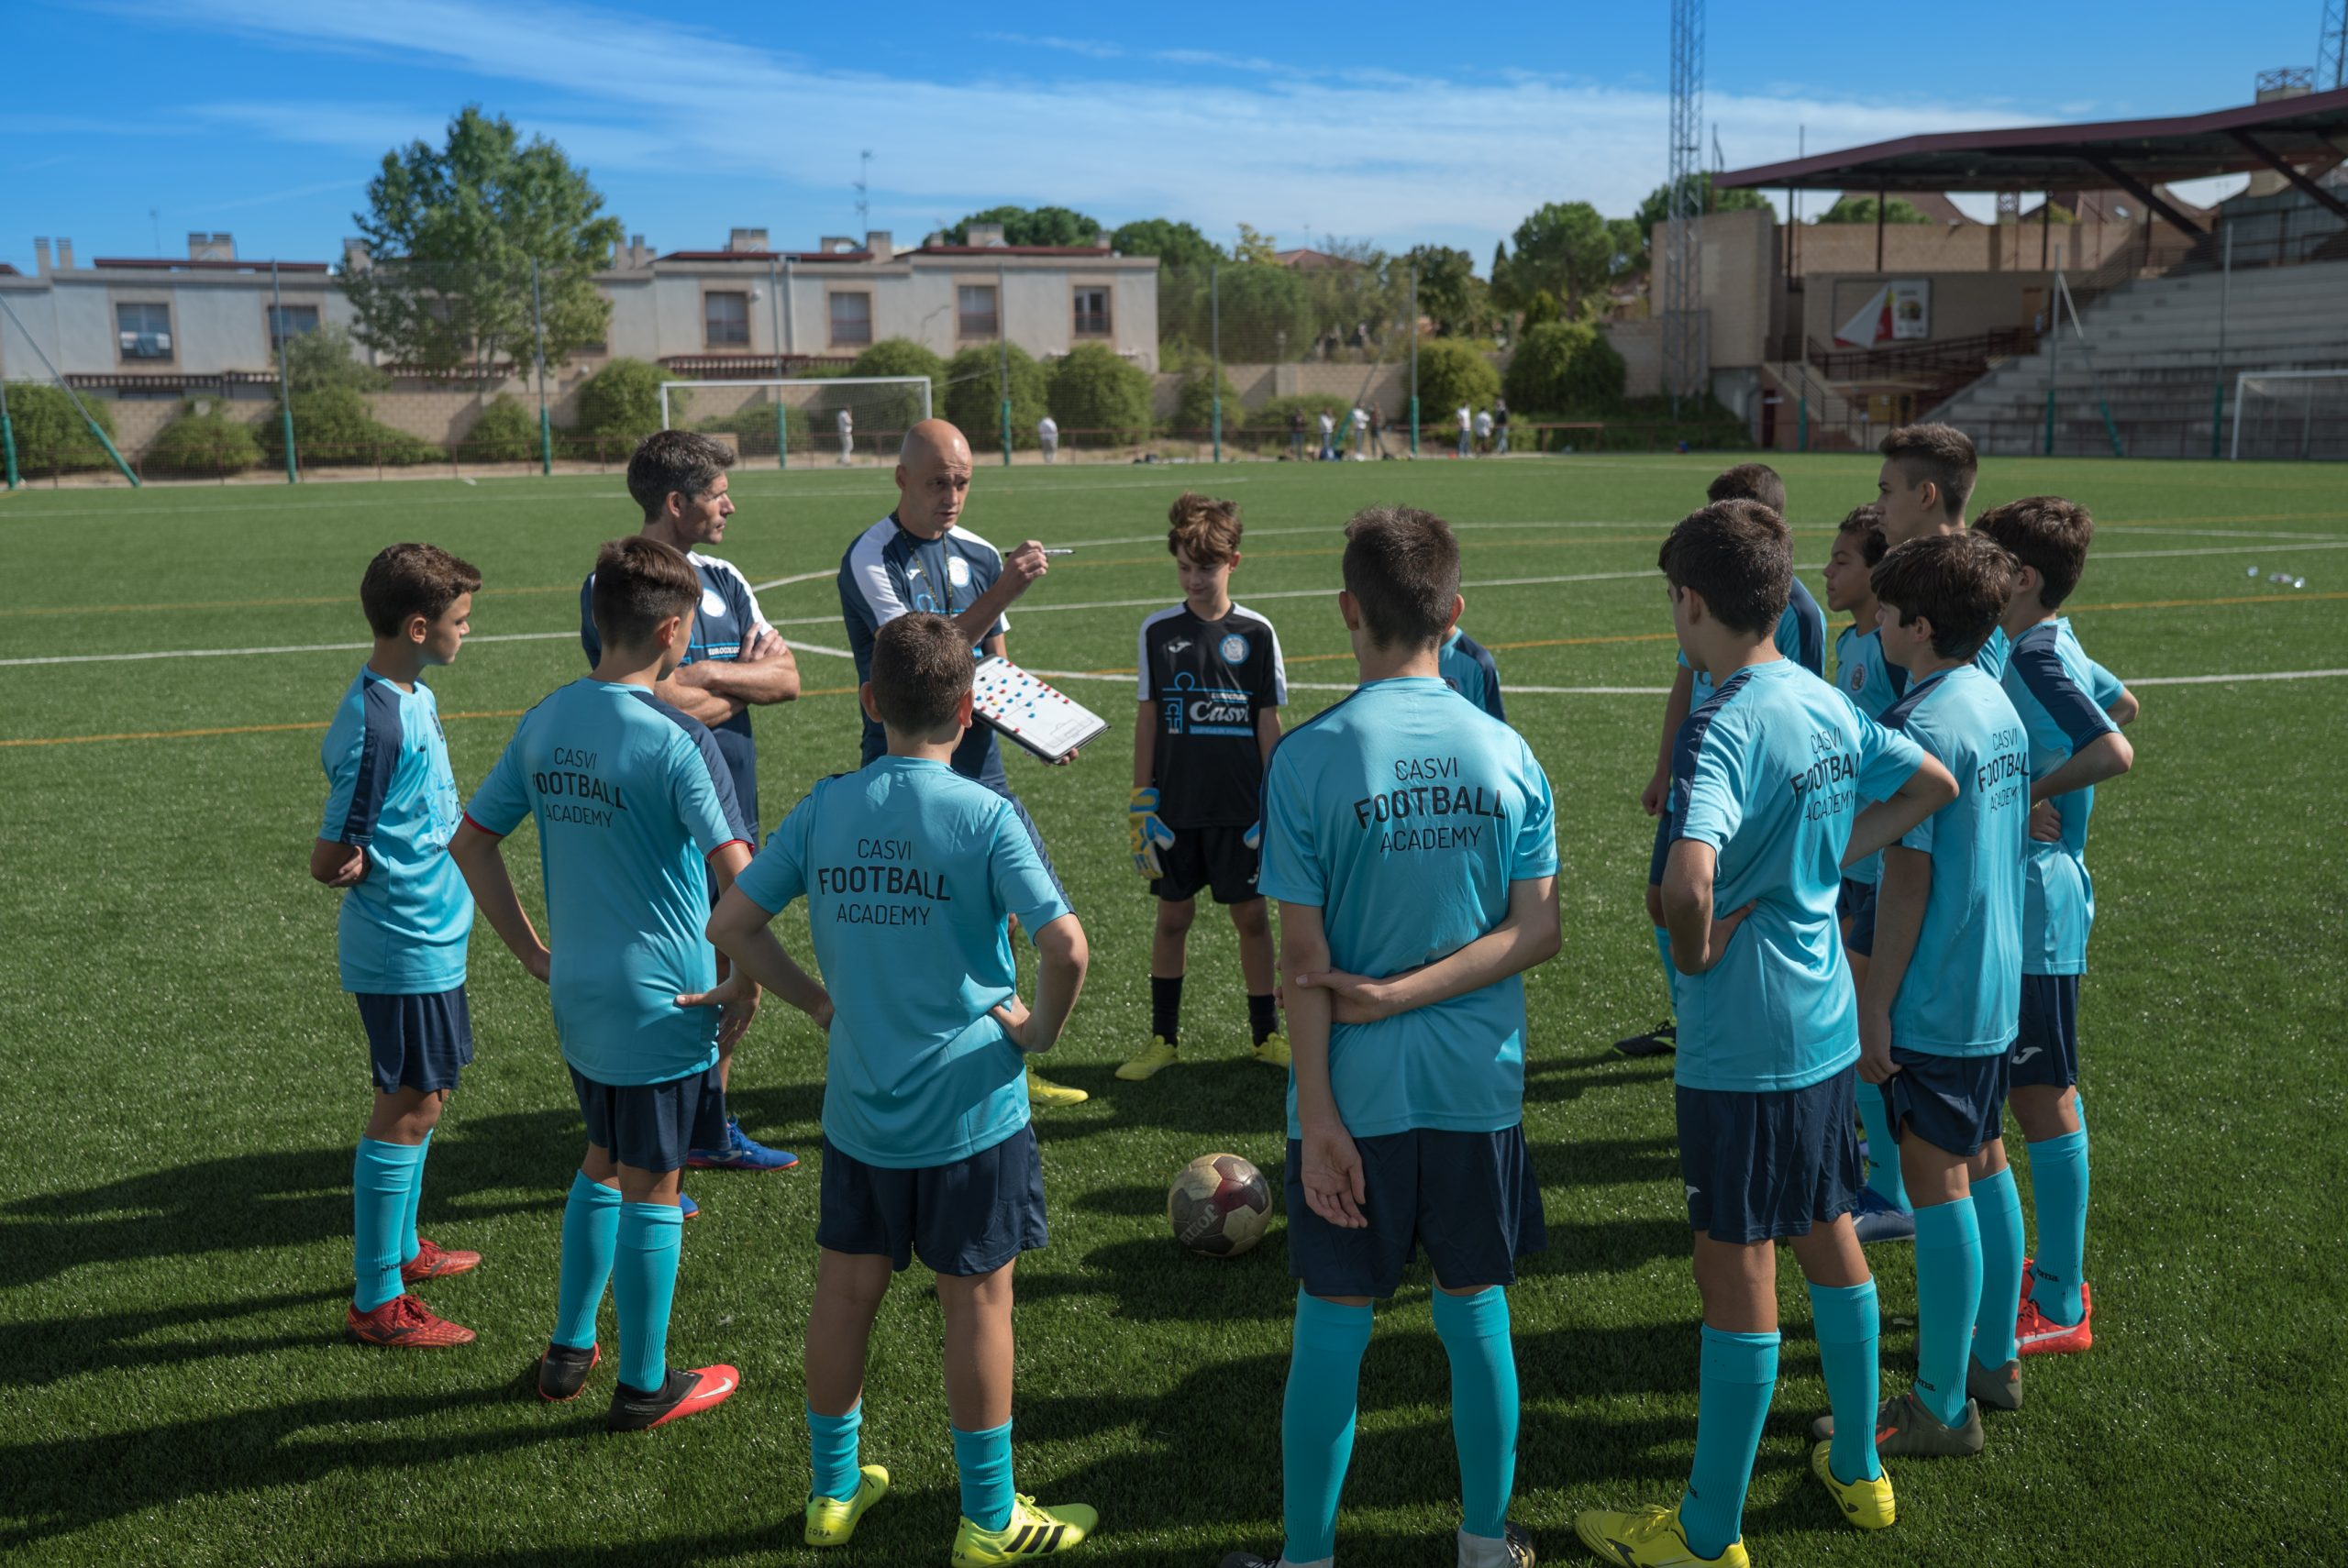 Casvi Football Academy - About Us